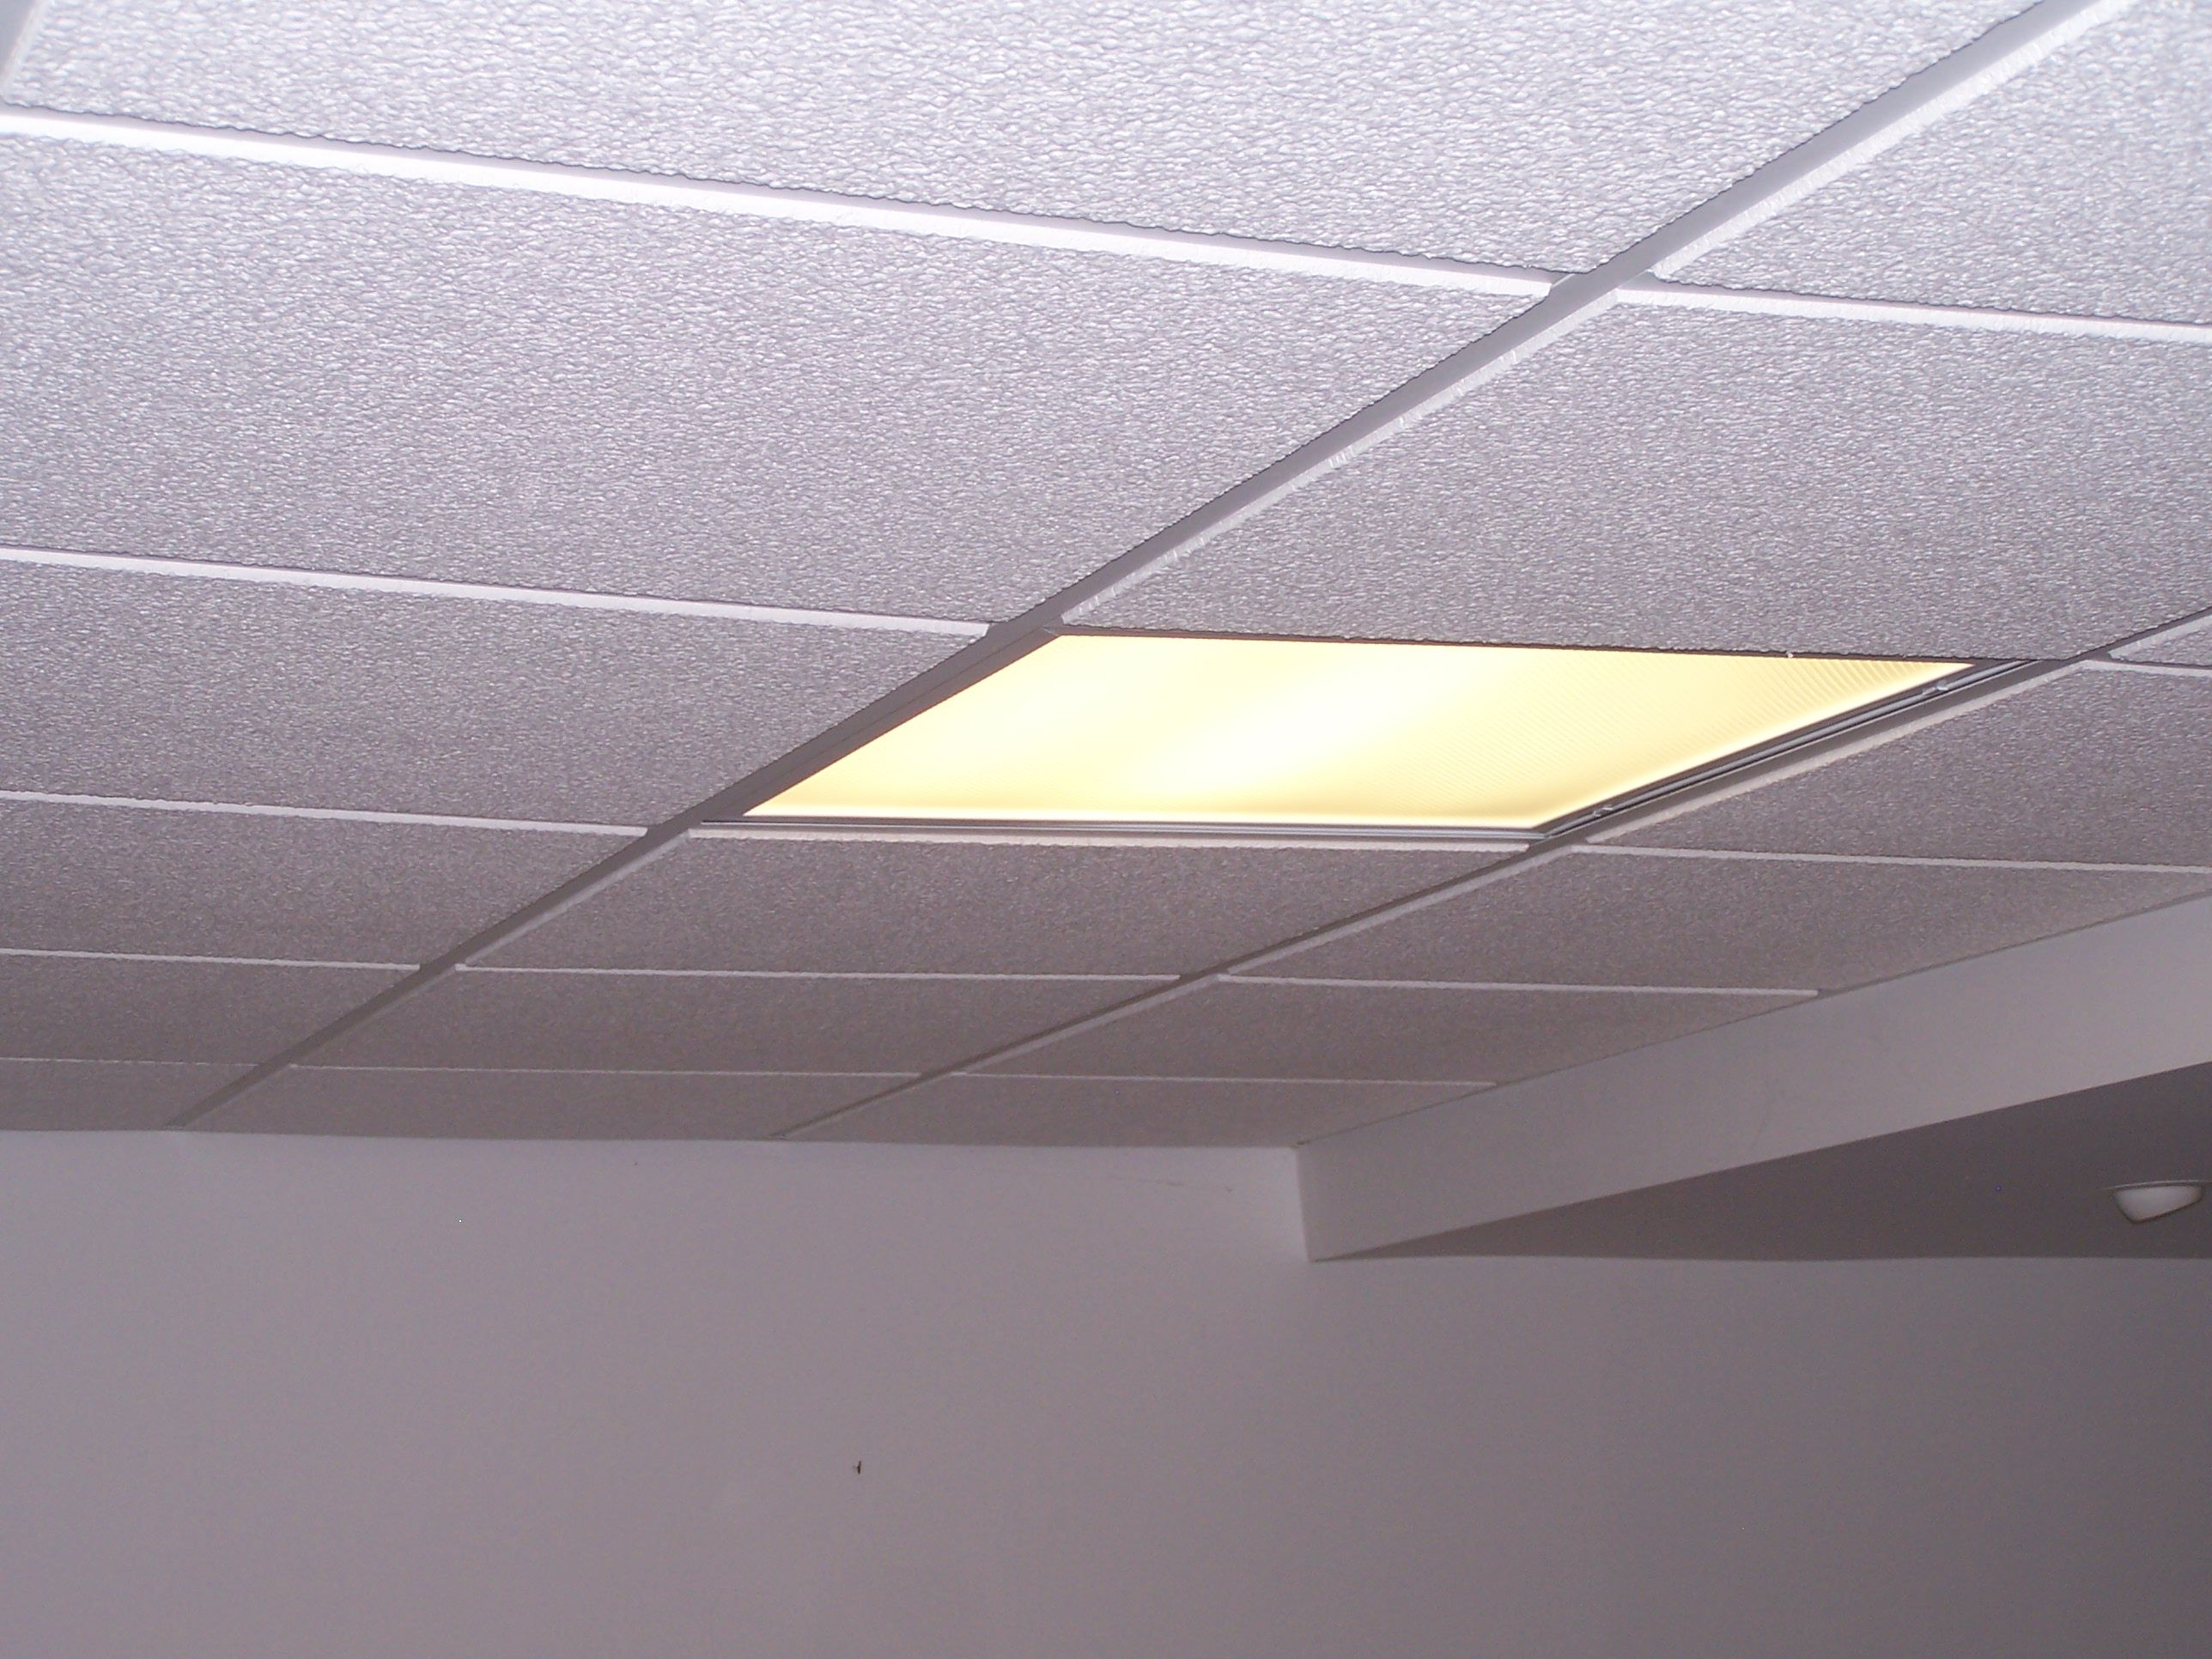 drop ceiling down ceilings armstrong fine pin tiles fissured microlook uk suspended